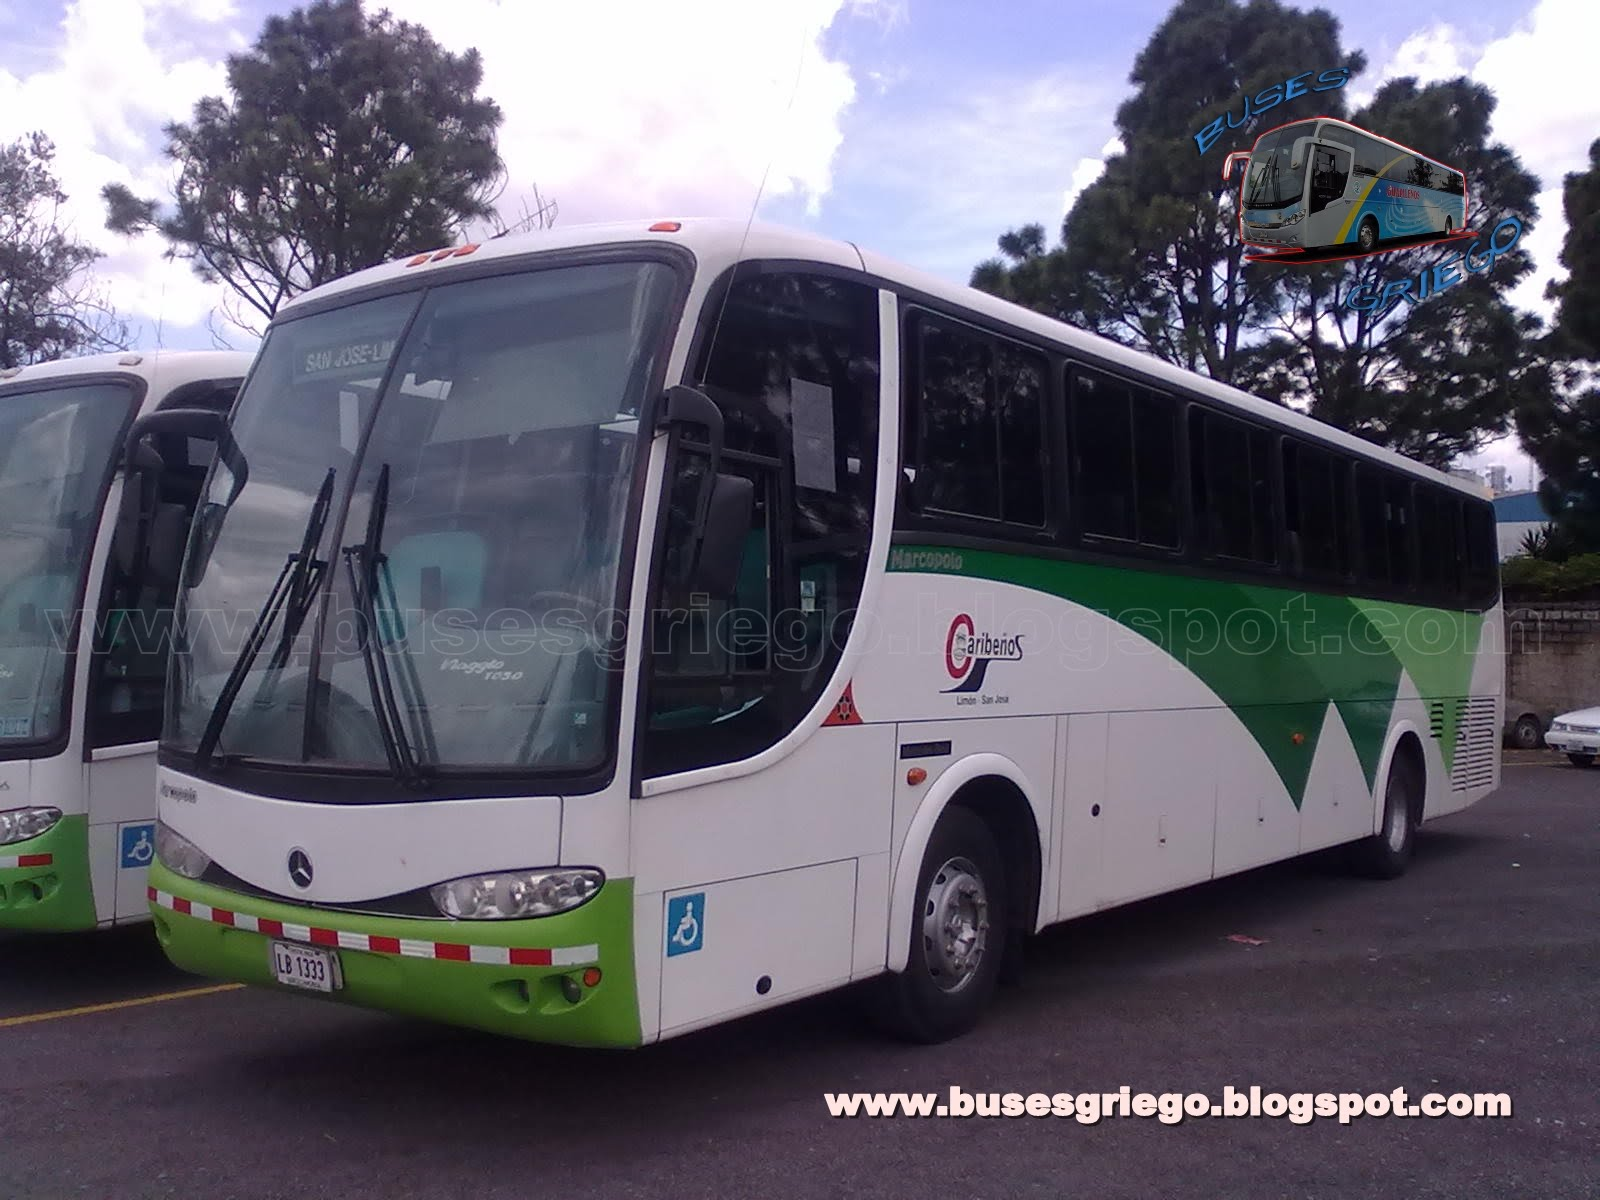 Buses griego galeria 15 24 10 10 for San jose mercedes benz